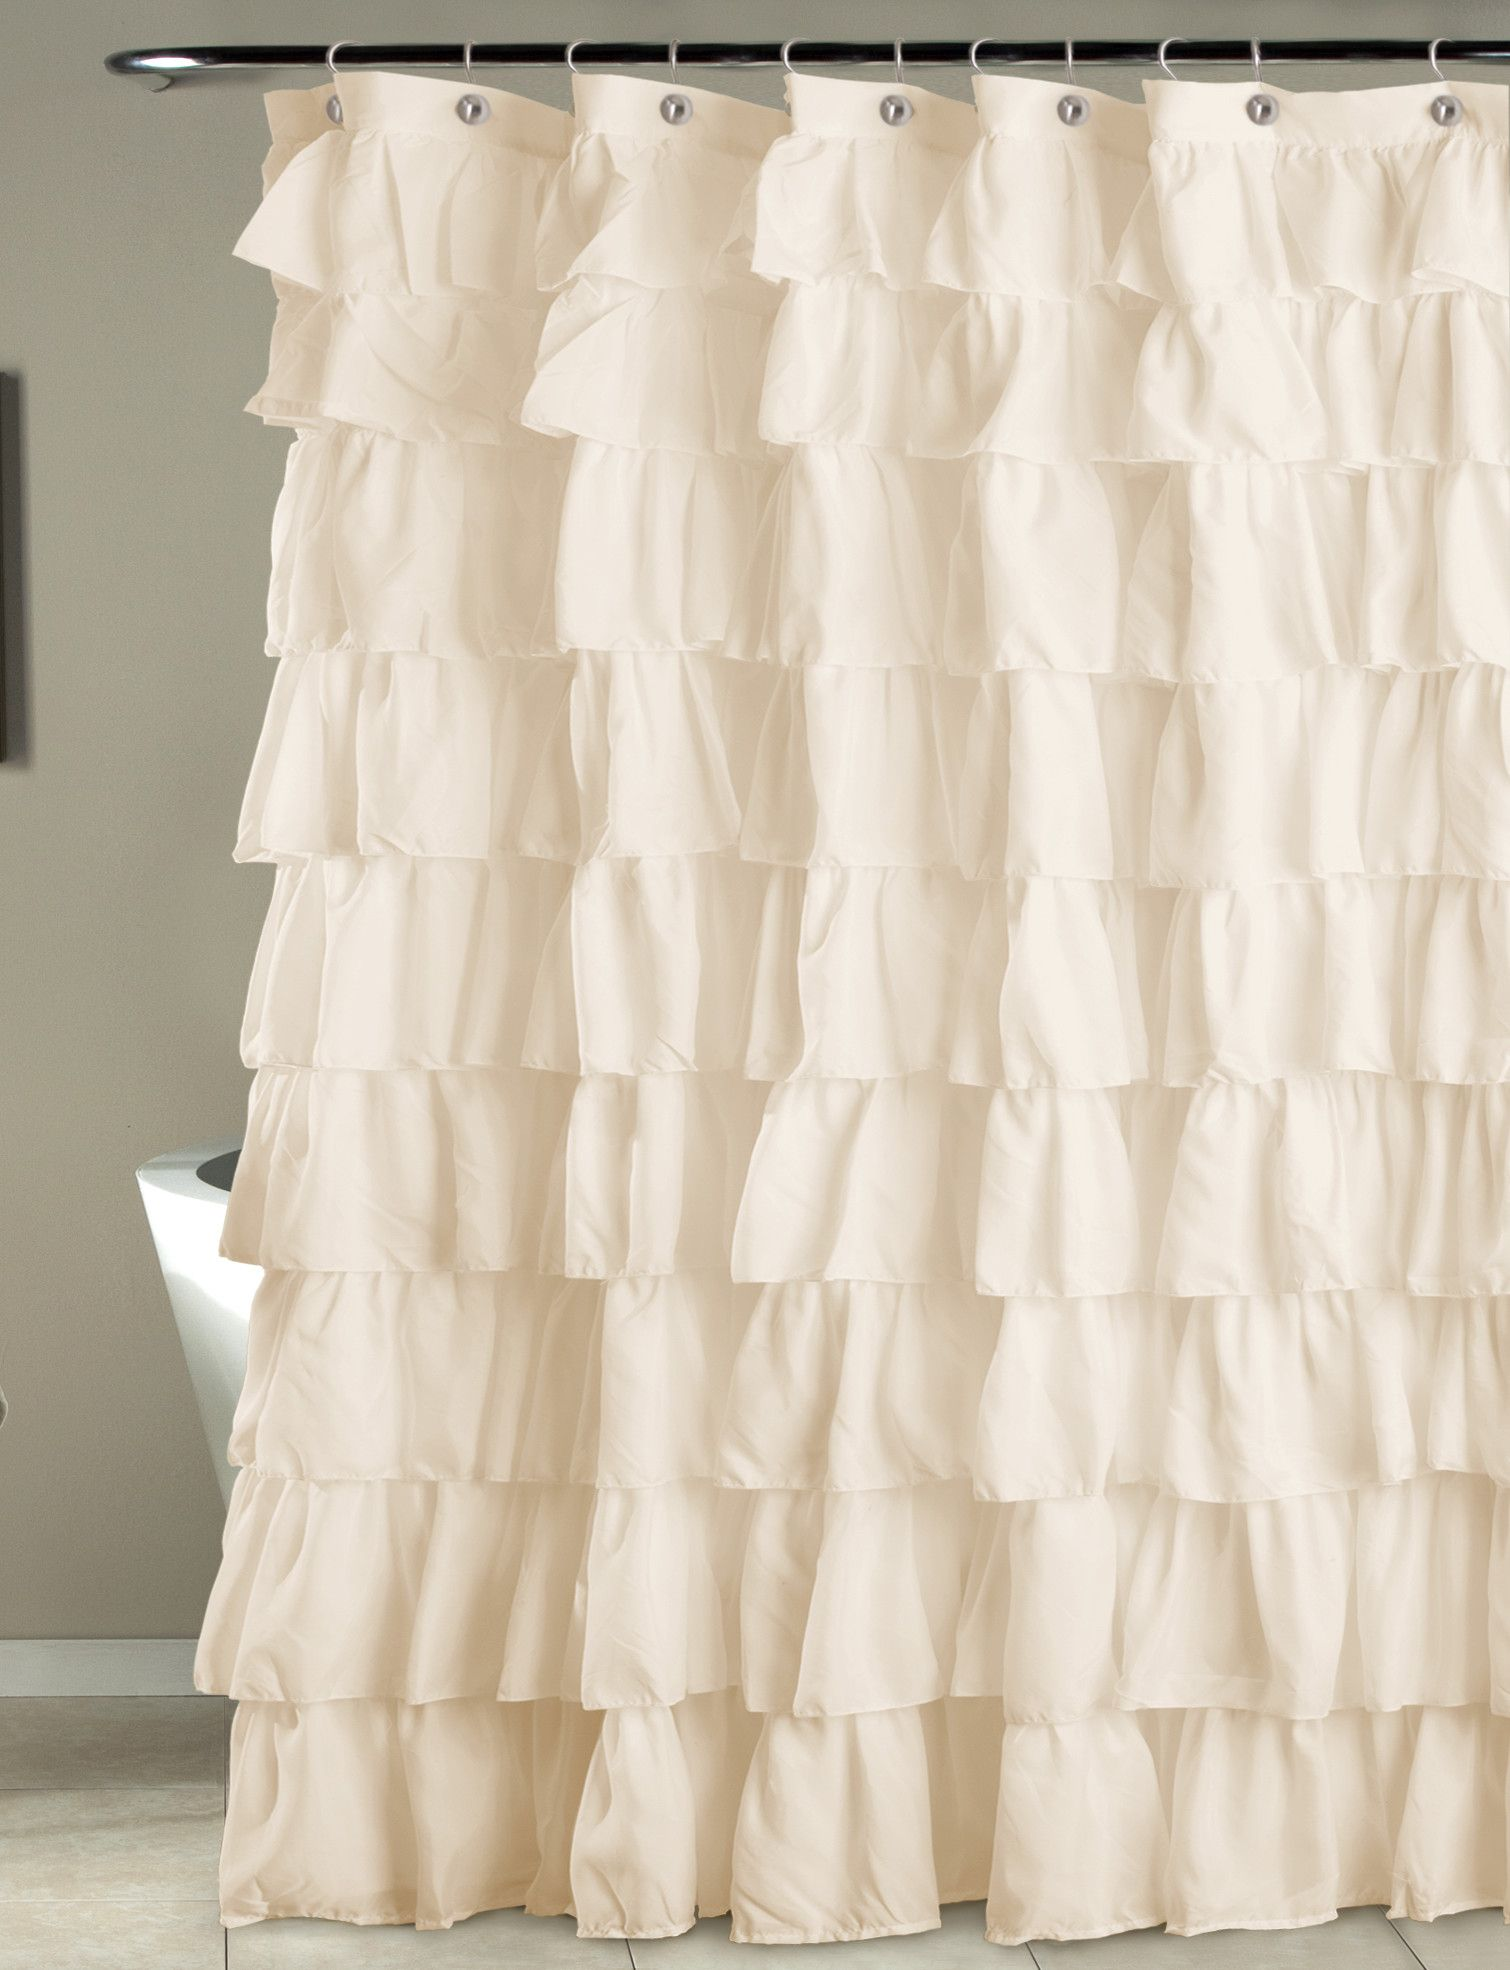 Features:  -Construction material: Polyester.  -Cleaning and care: Machine wash.  Product Type: -Shower curtain.  Material: -Polyester.  Pattern: -Solid.  Hooks Required: -Yes.  Gender: -Neutral. Dime